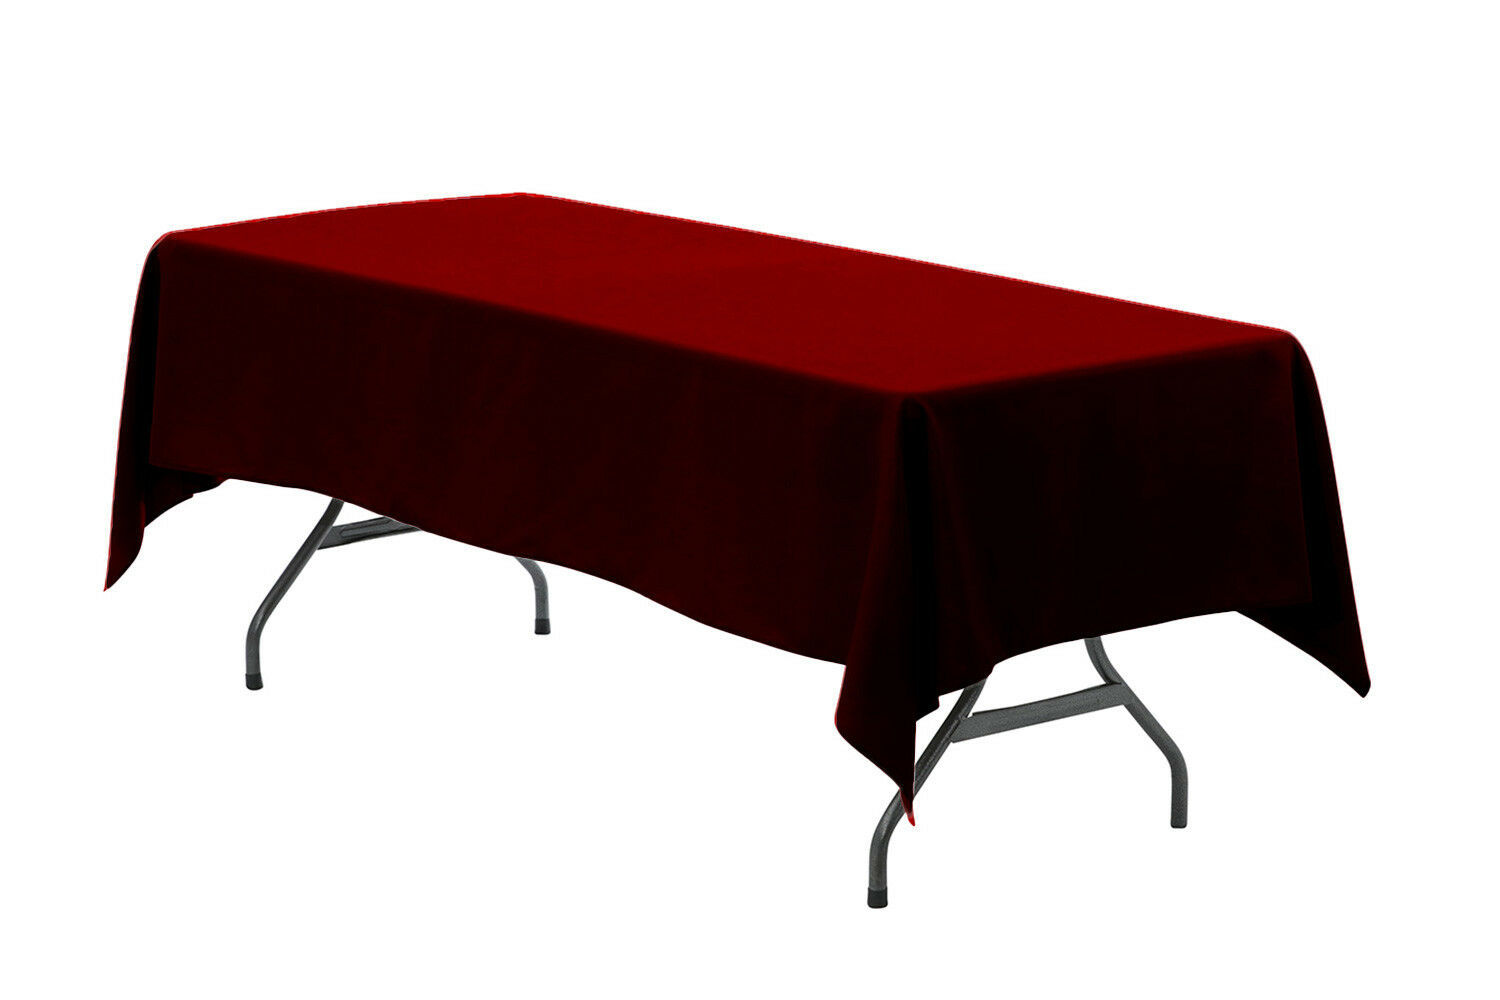 Primary image for Rectangular Premium Polyester Tablecloth Burgundy 60 x 126 inch